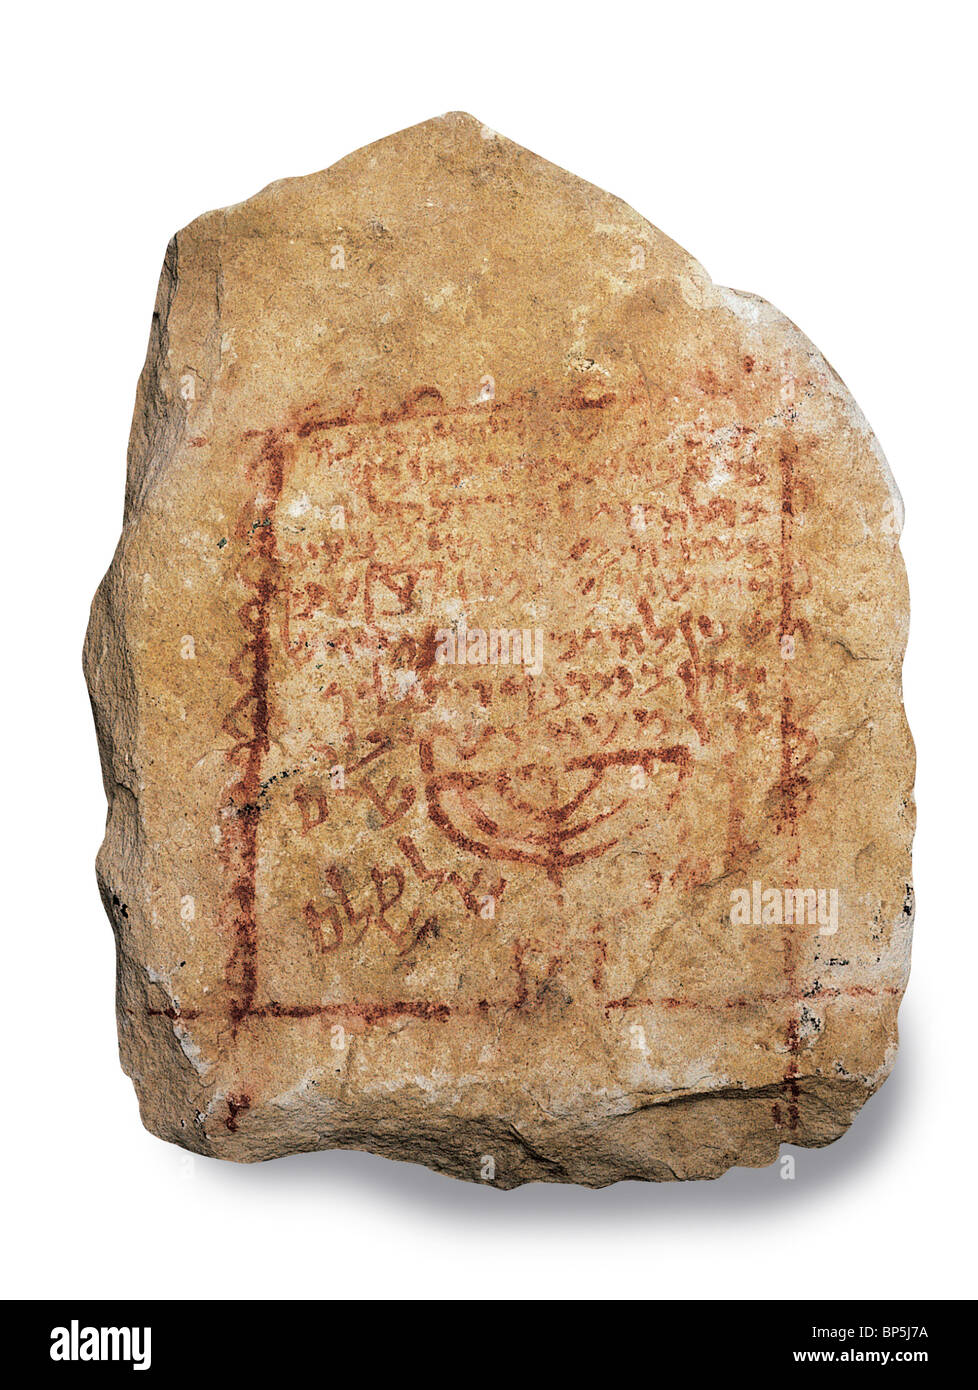 JEWISH TOMBSTONE INSCRIBED IN HEBREW & DECORATED WITH THE SEVEN BRANCHED CANDELABRA DATING FROM C. 5TH. C. AD.LARGE - Stock Image